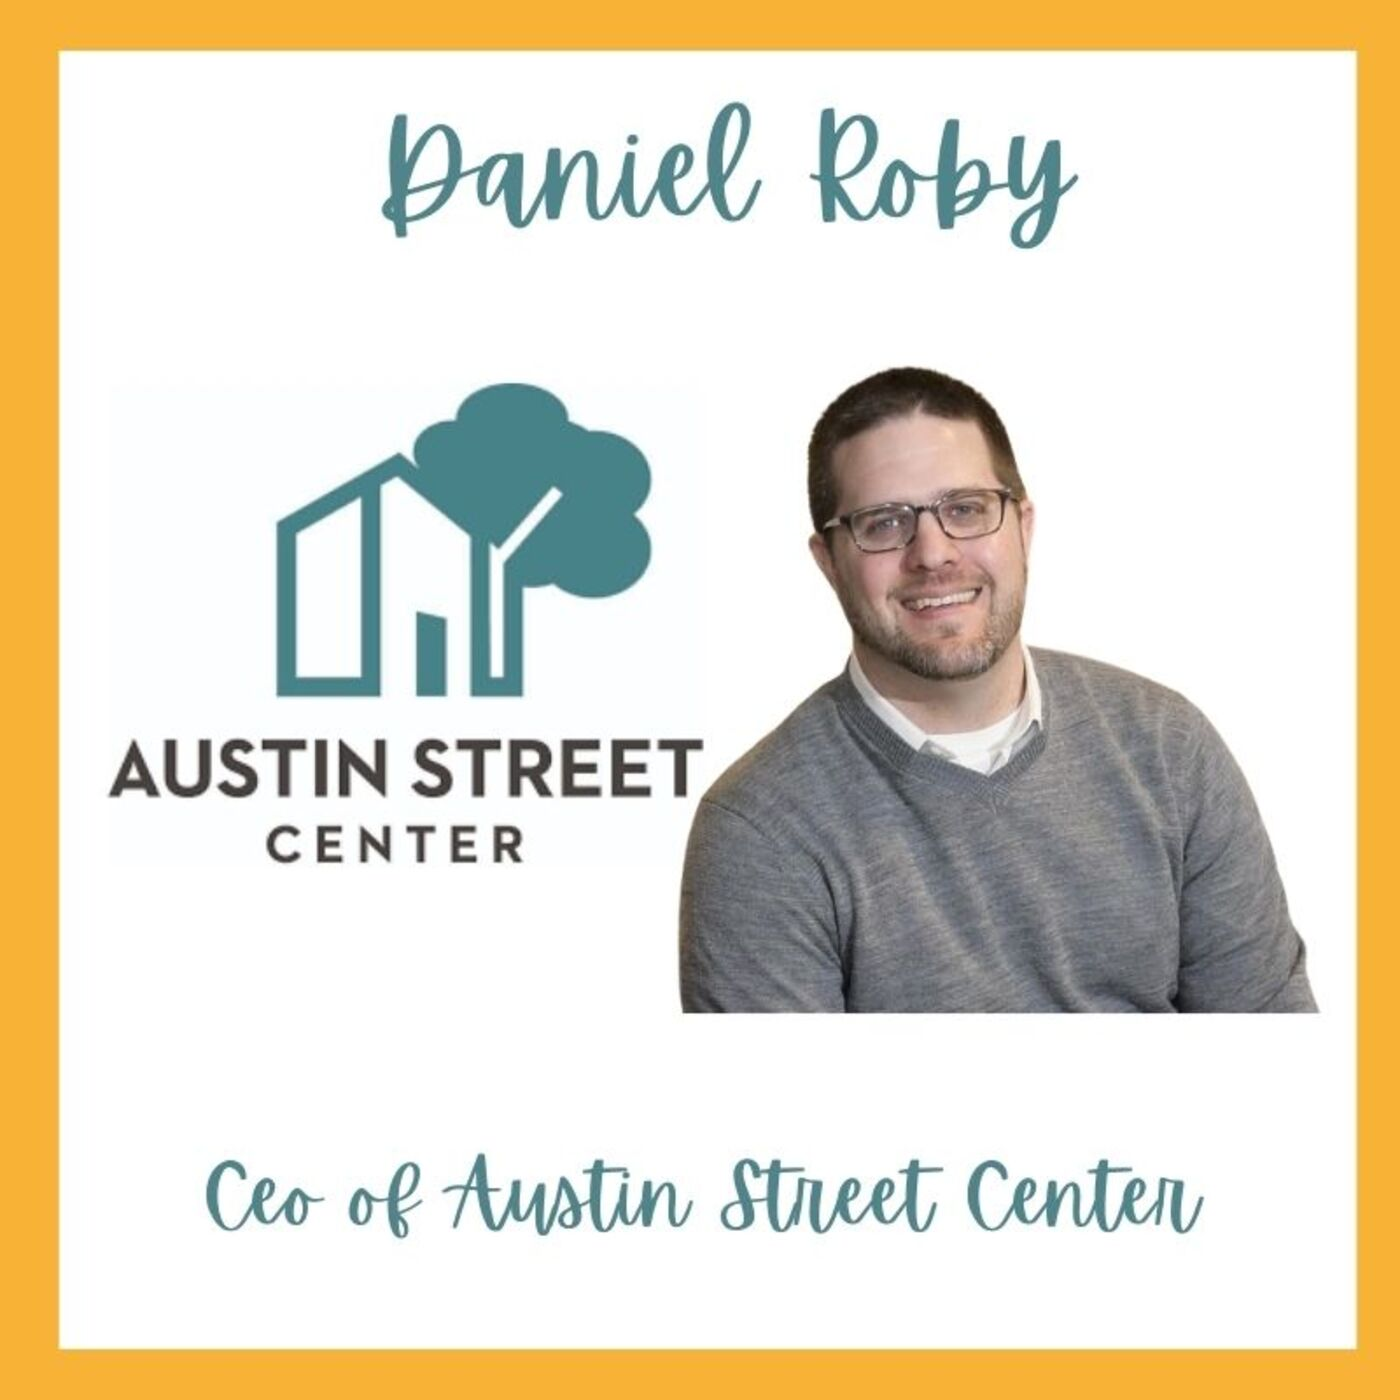 A Colorful Conversation with Daniel Roby of Austin Street Center